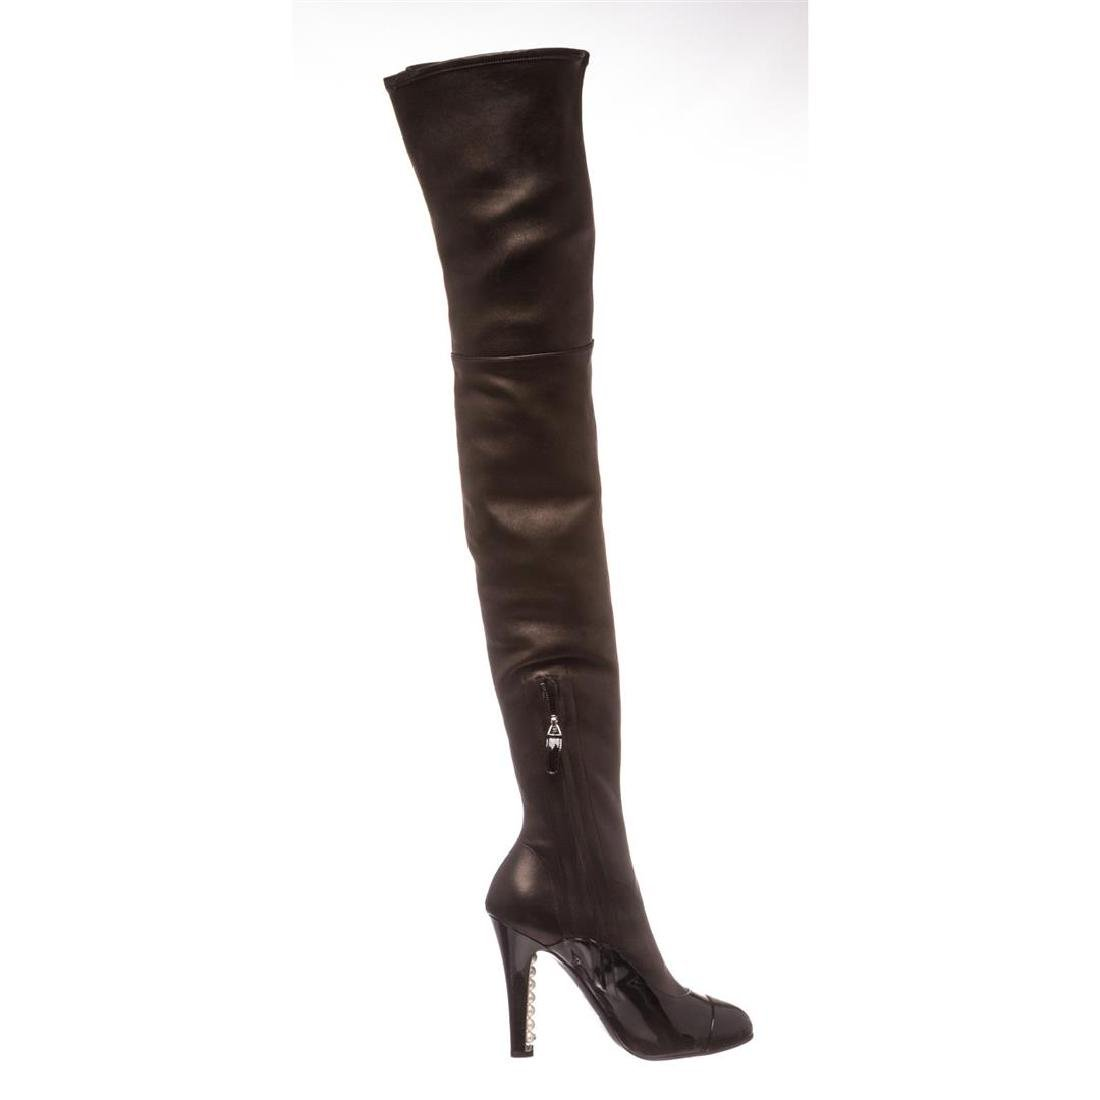 Chanel Black Leather Thigh-High Pearl Heel Boots Heels - 6